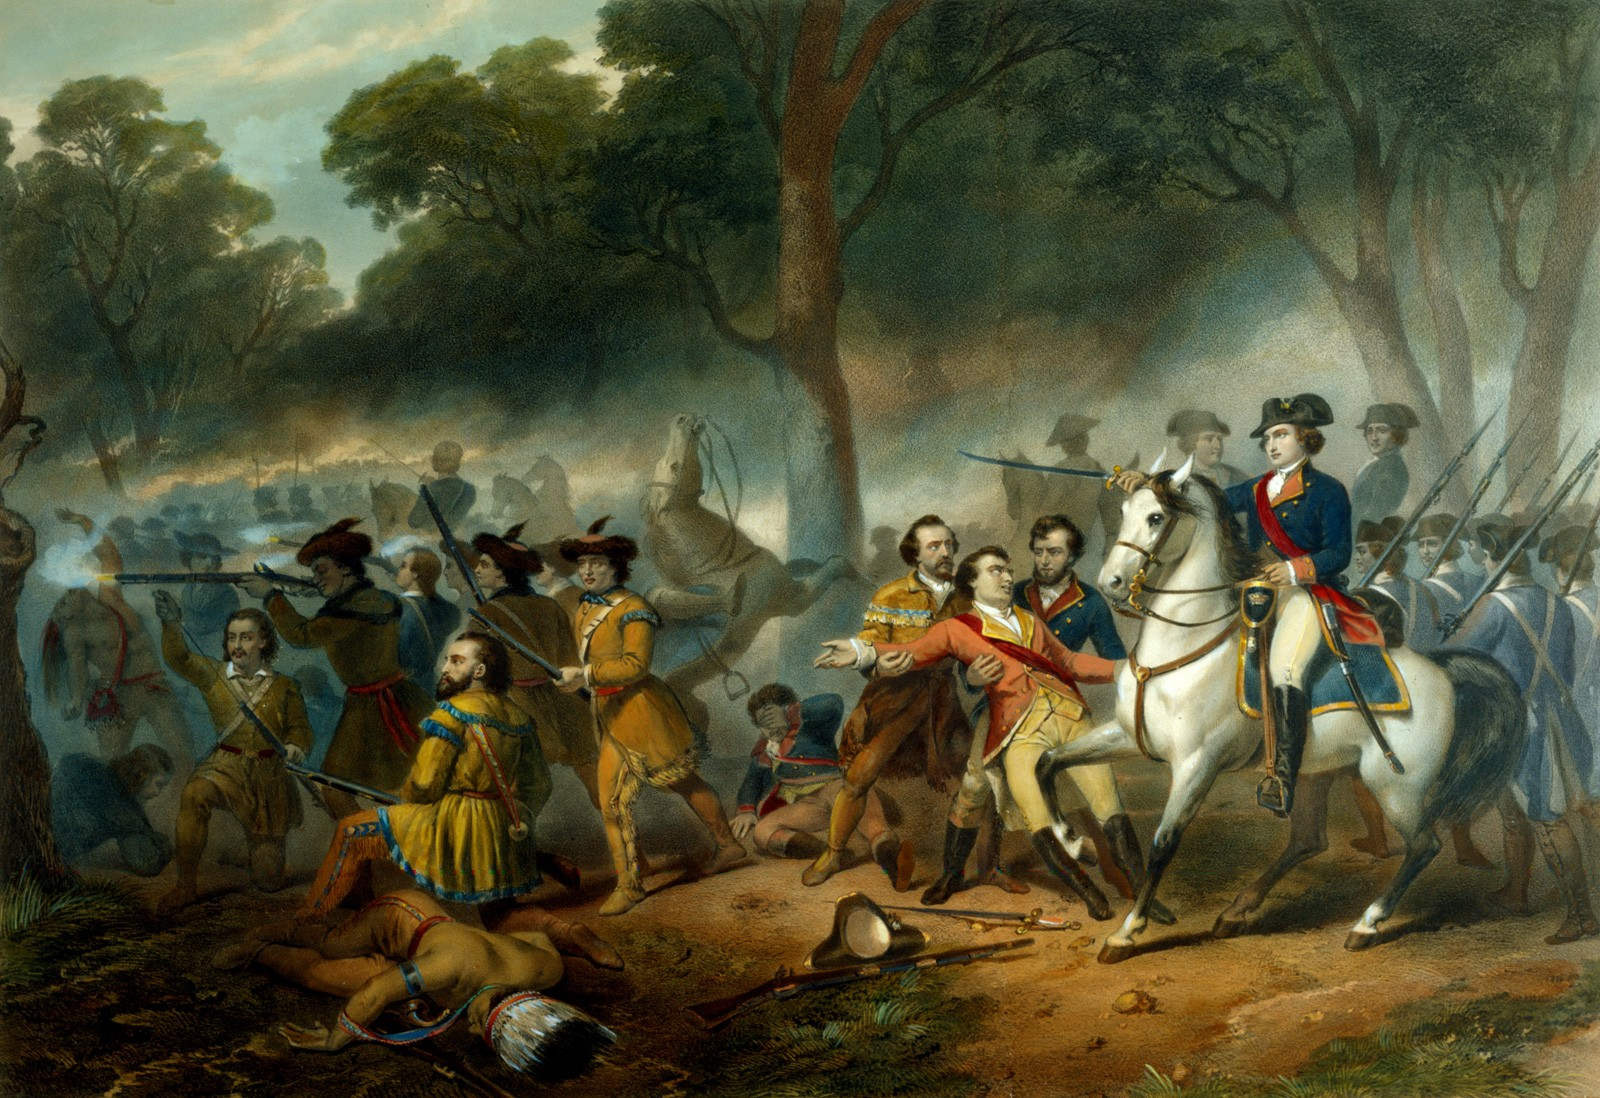 george washington middot george washington s mount vernon washington the ier battle of the monongahela 9 1755